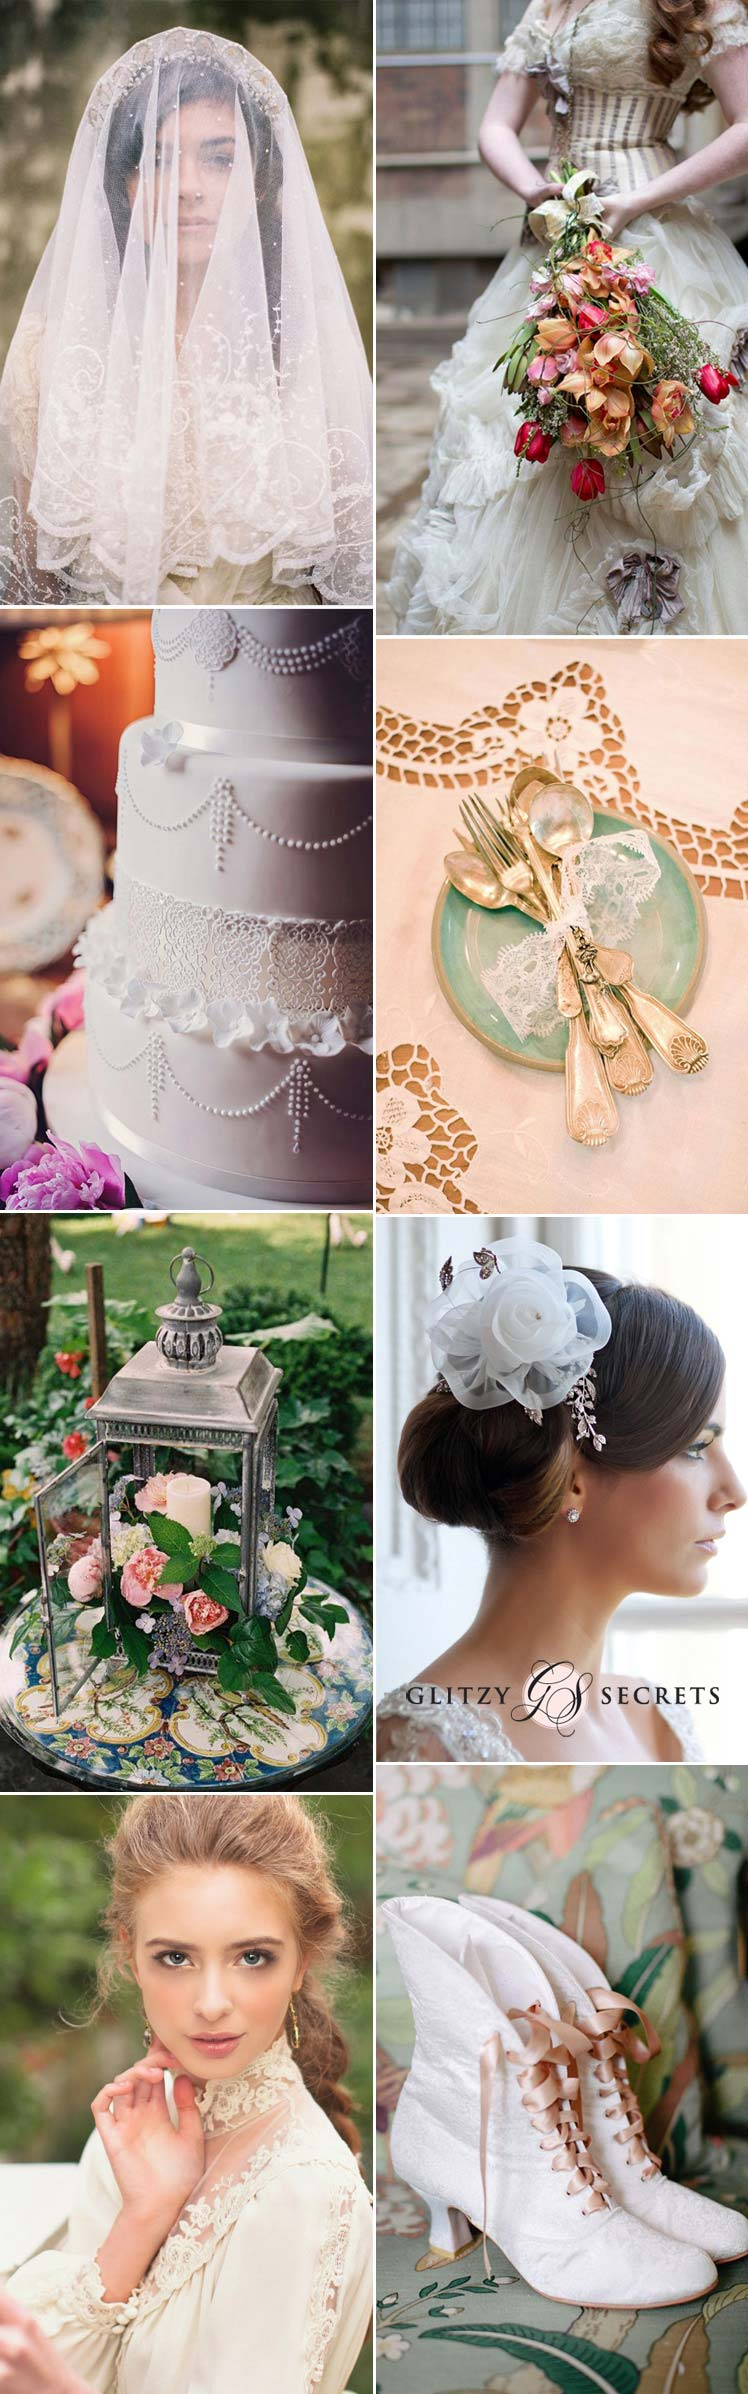 Victorian wedding ideas for period style